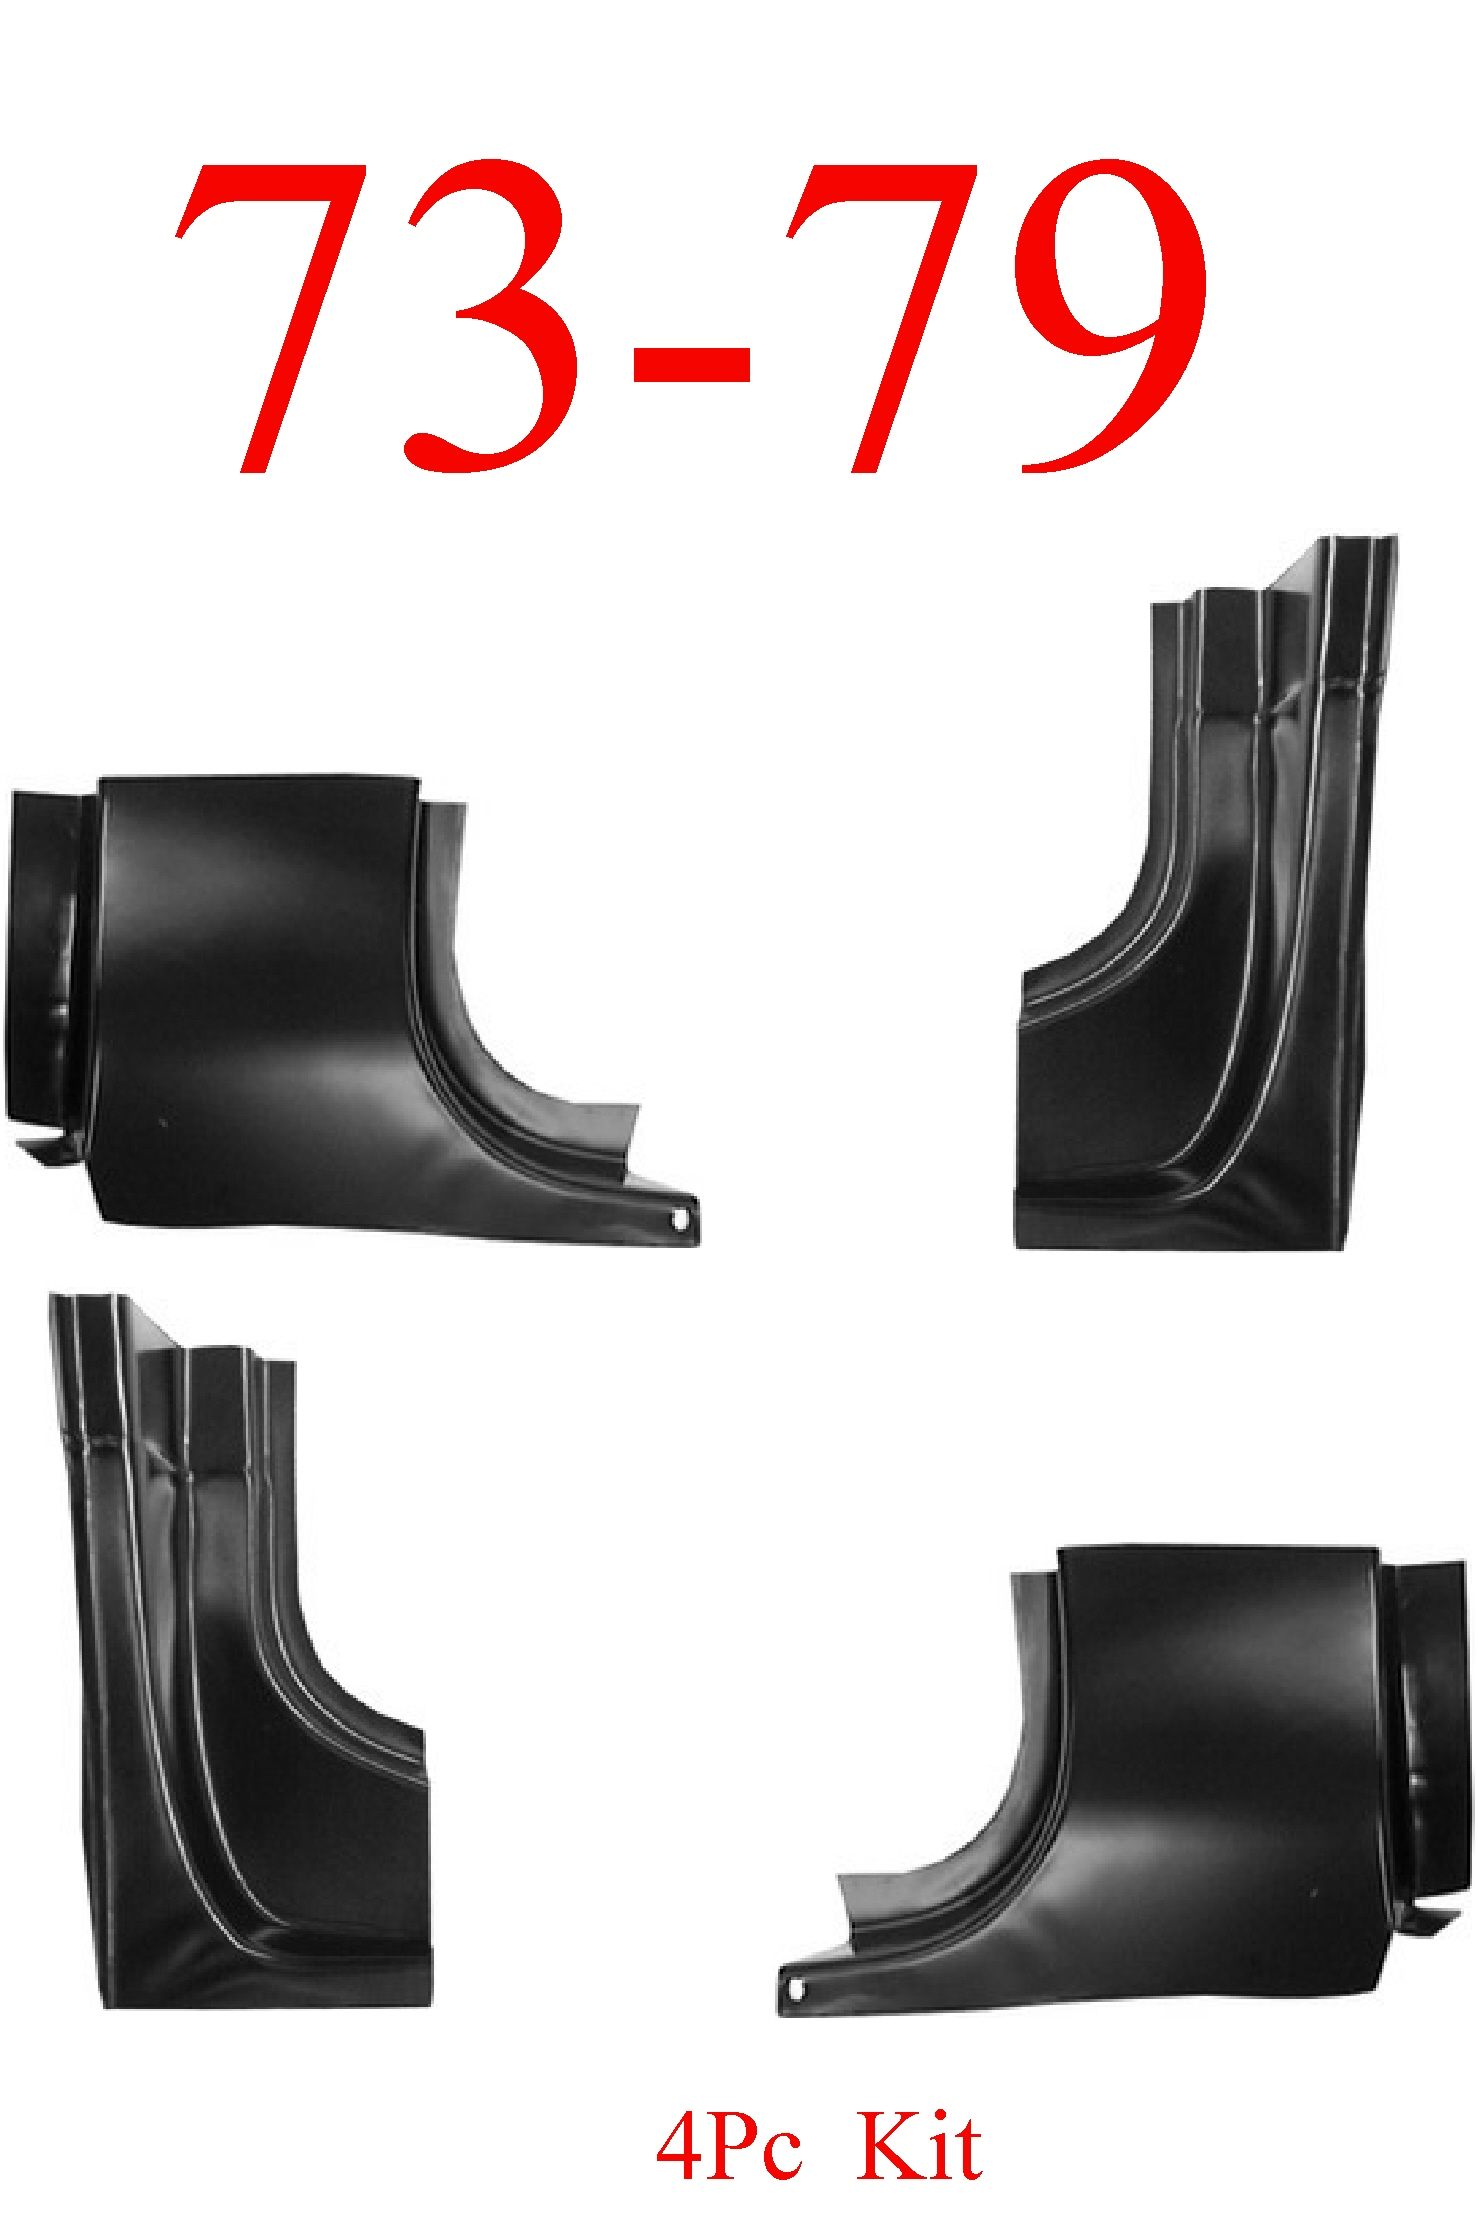 73-79 Ford 4Pc Front & Rear Door Post Kit